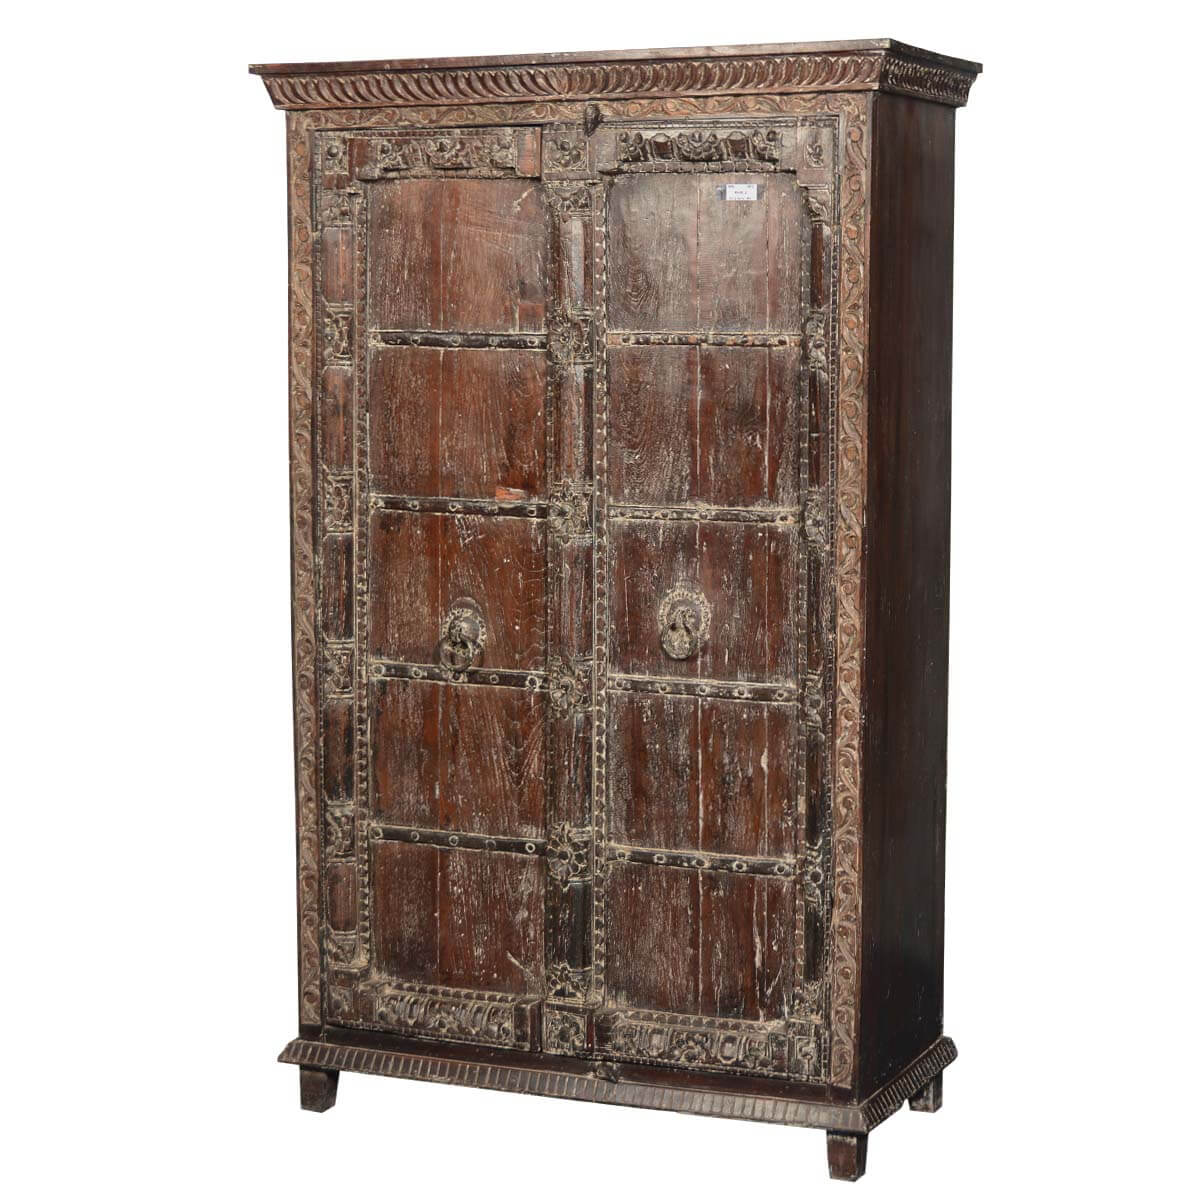 rustic reclaimed wood hampshire bedroom armoire wardrobe cabinet